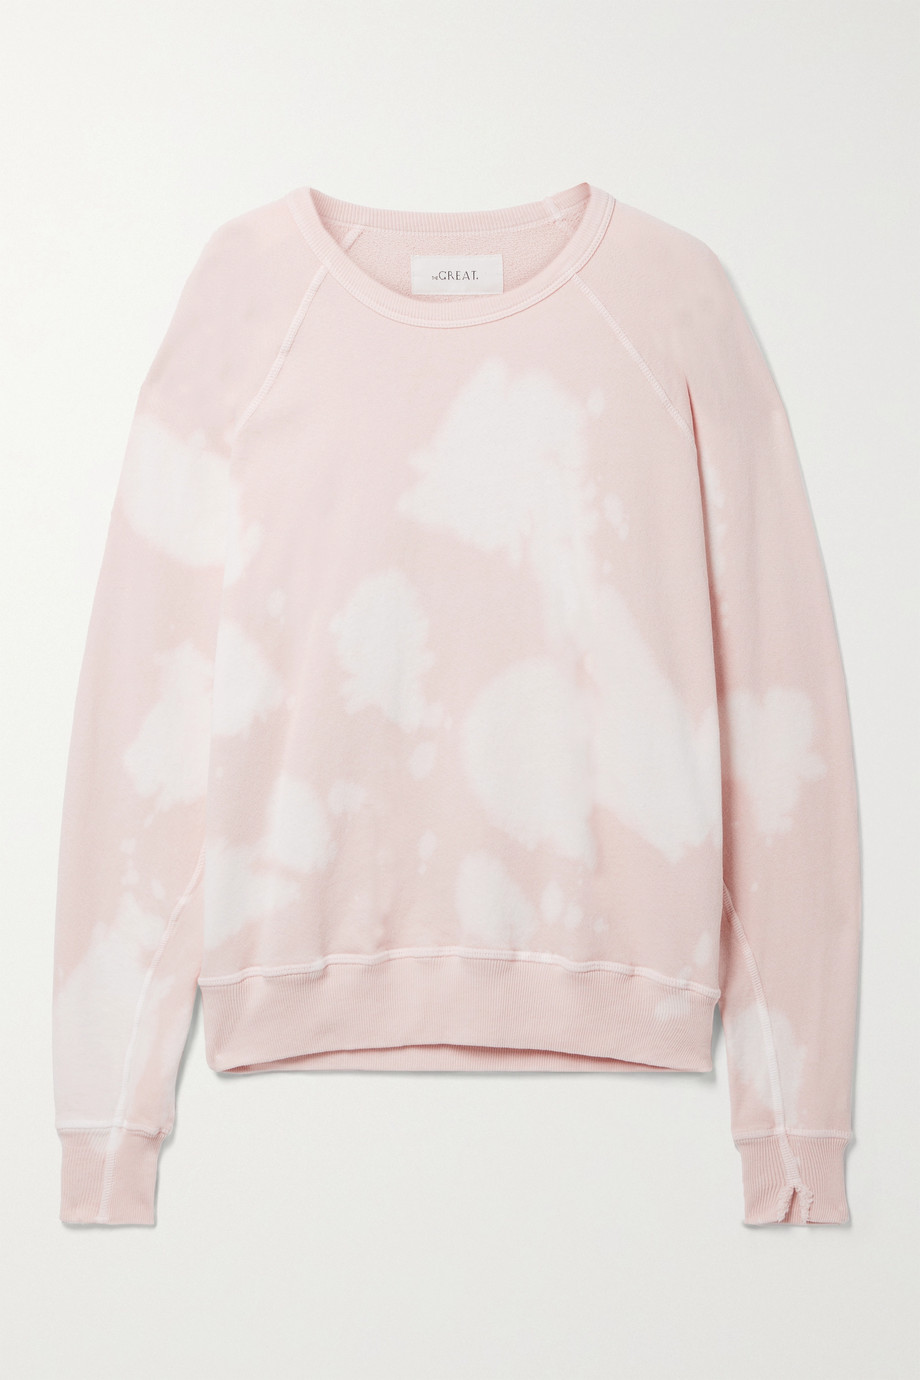 THE GREAT. The College tie-dyed cotton-jersey sweatshirt